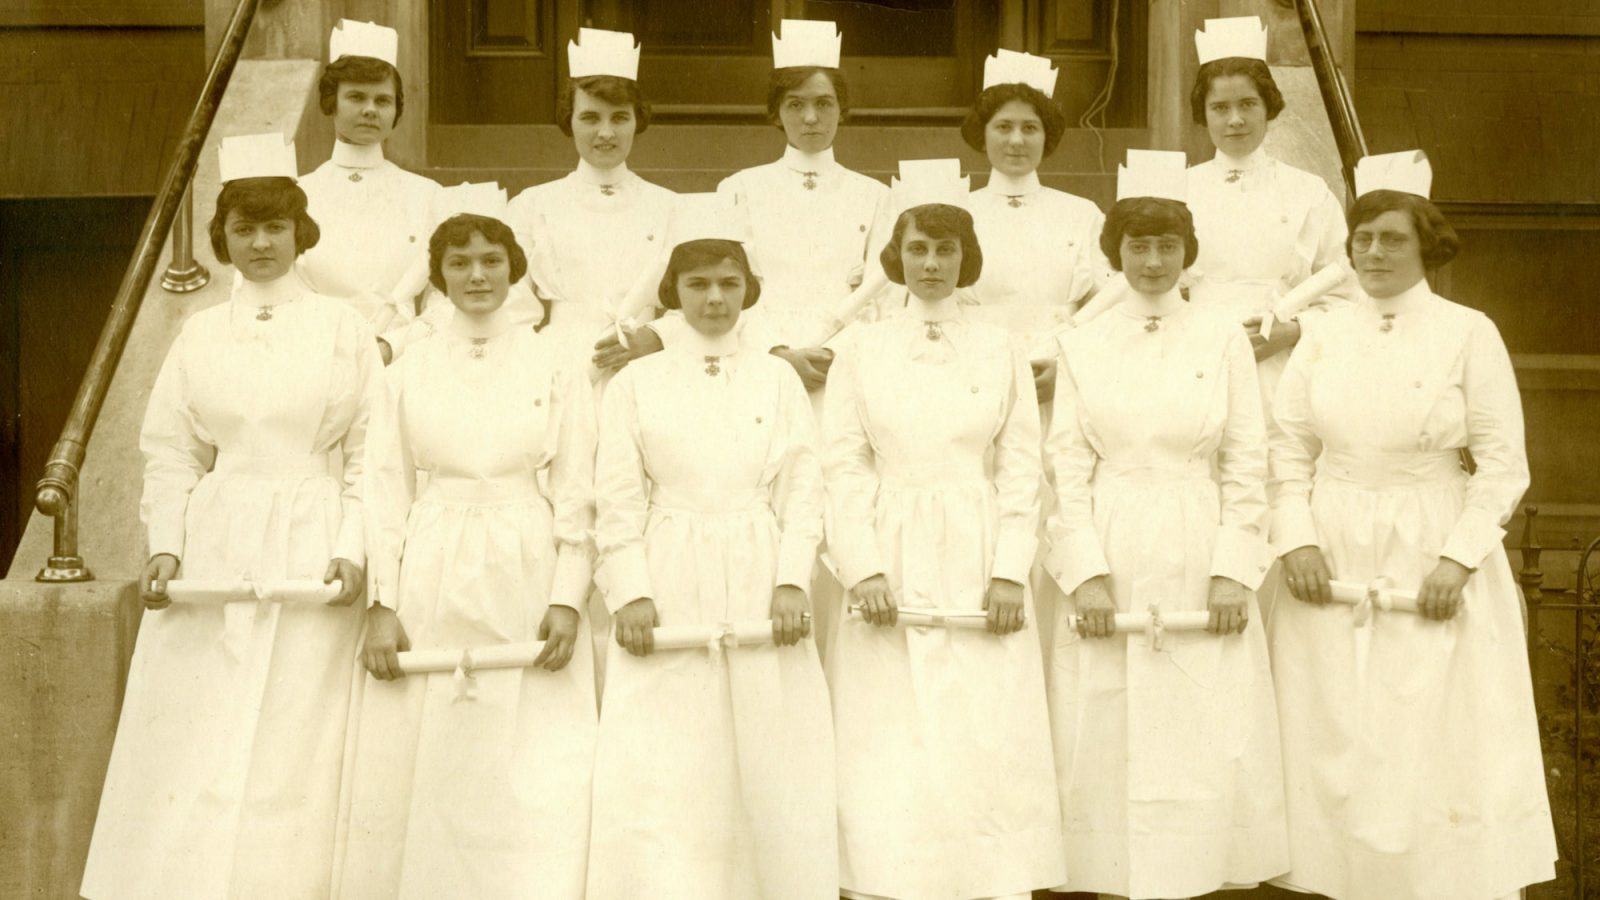 Eleven nurses stand in two rows on steps dressed on uniform in a 1920 photo.